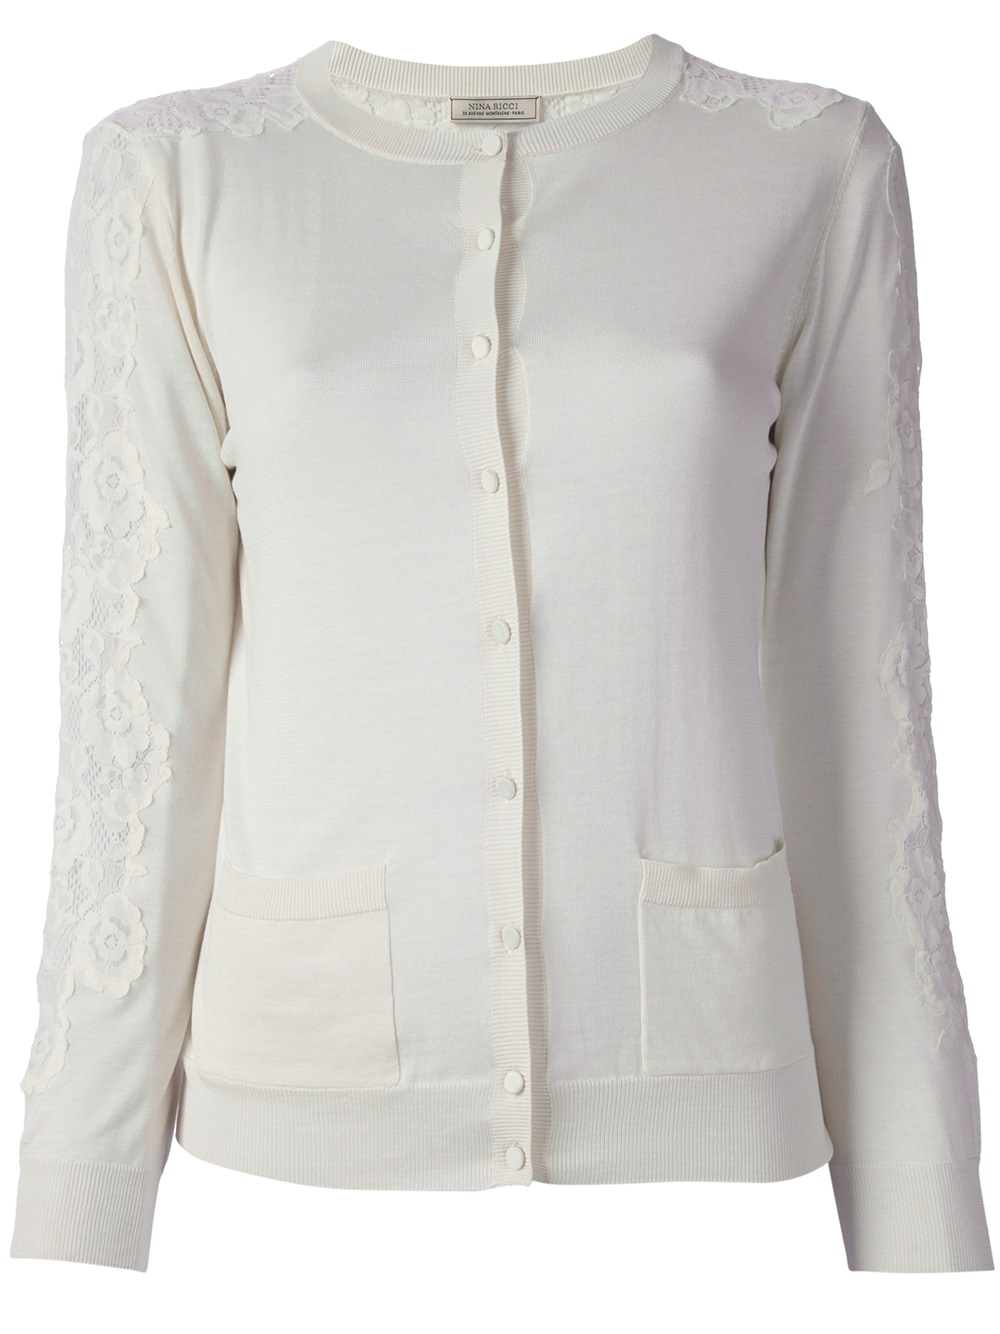 Nina ricci Floral Lace Insert Cardigan in White | Lyst